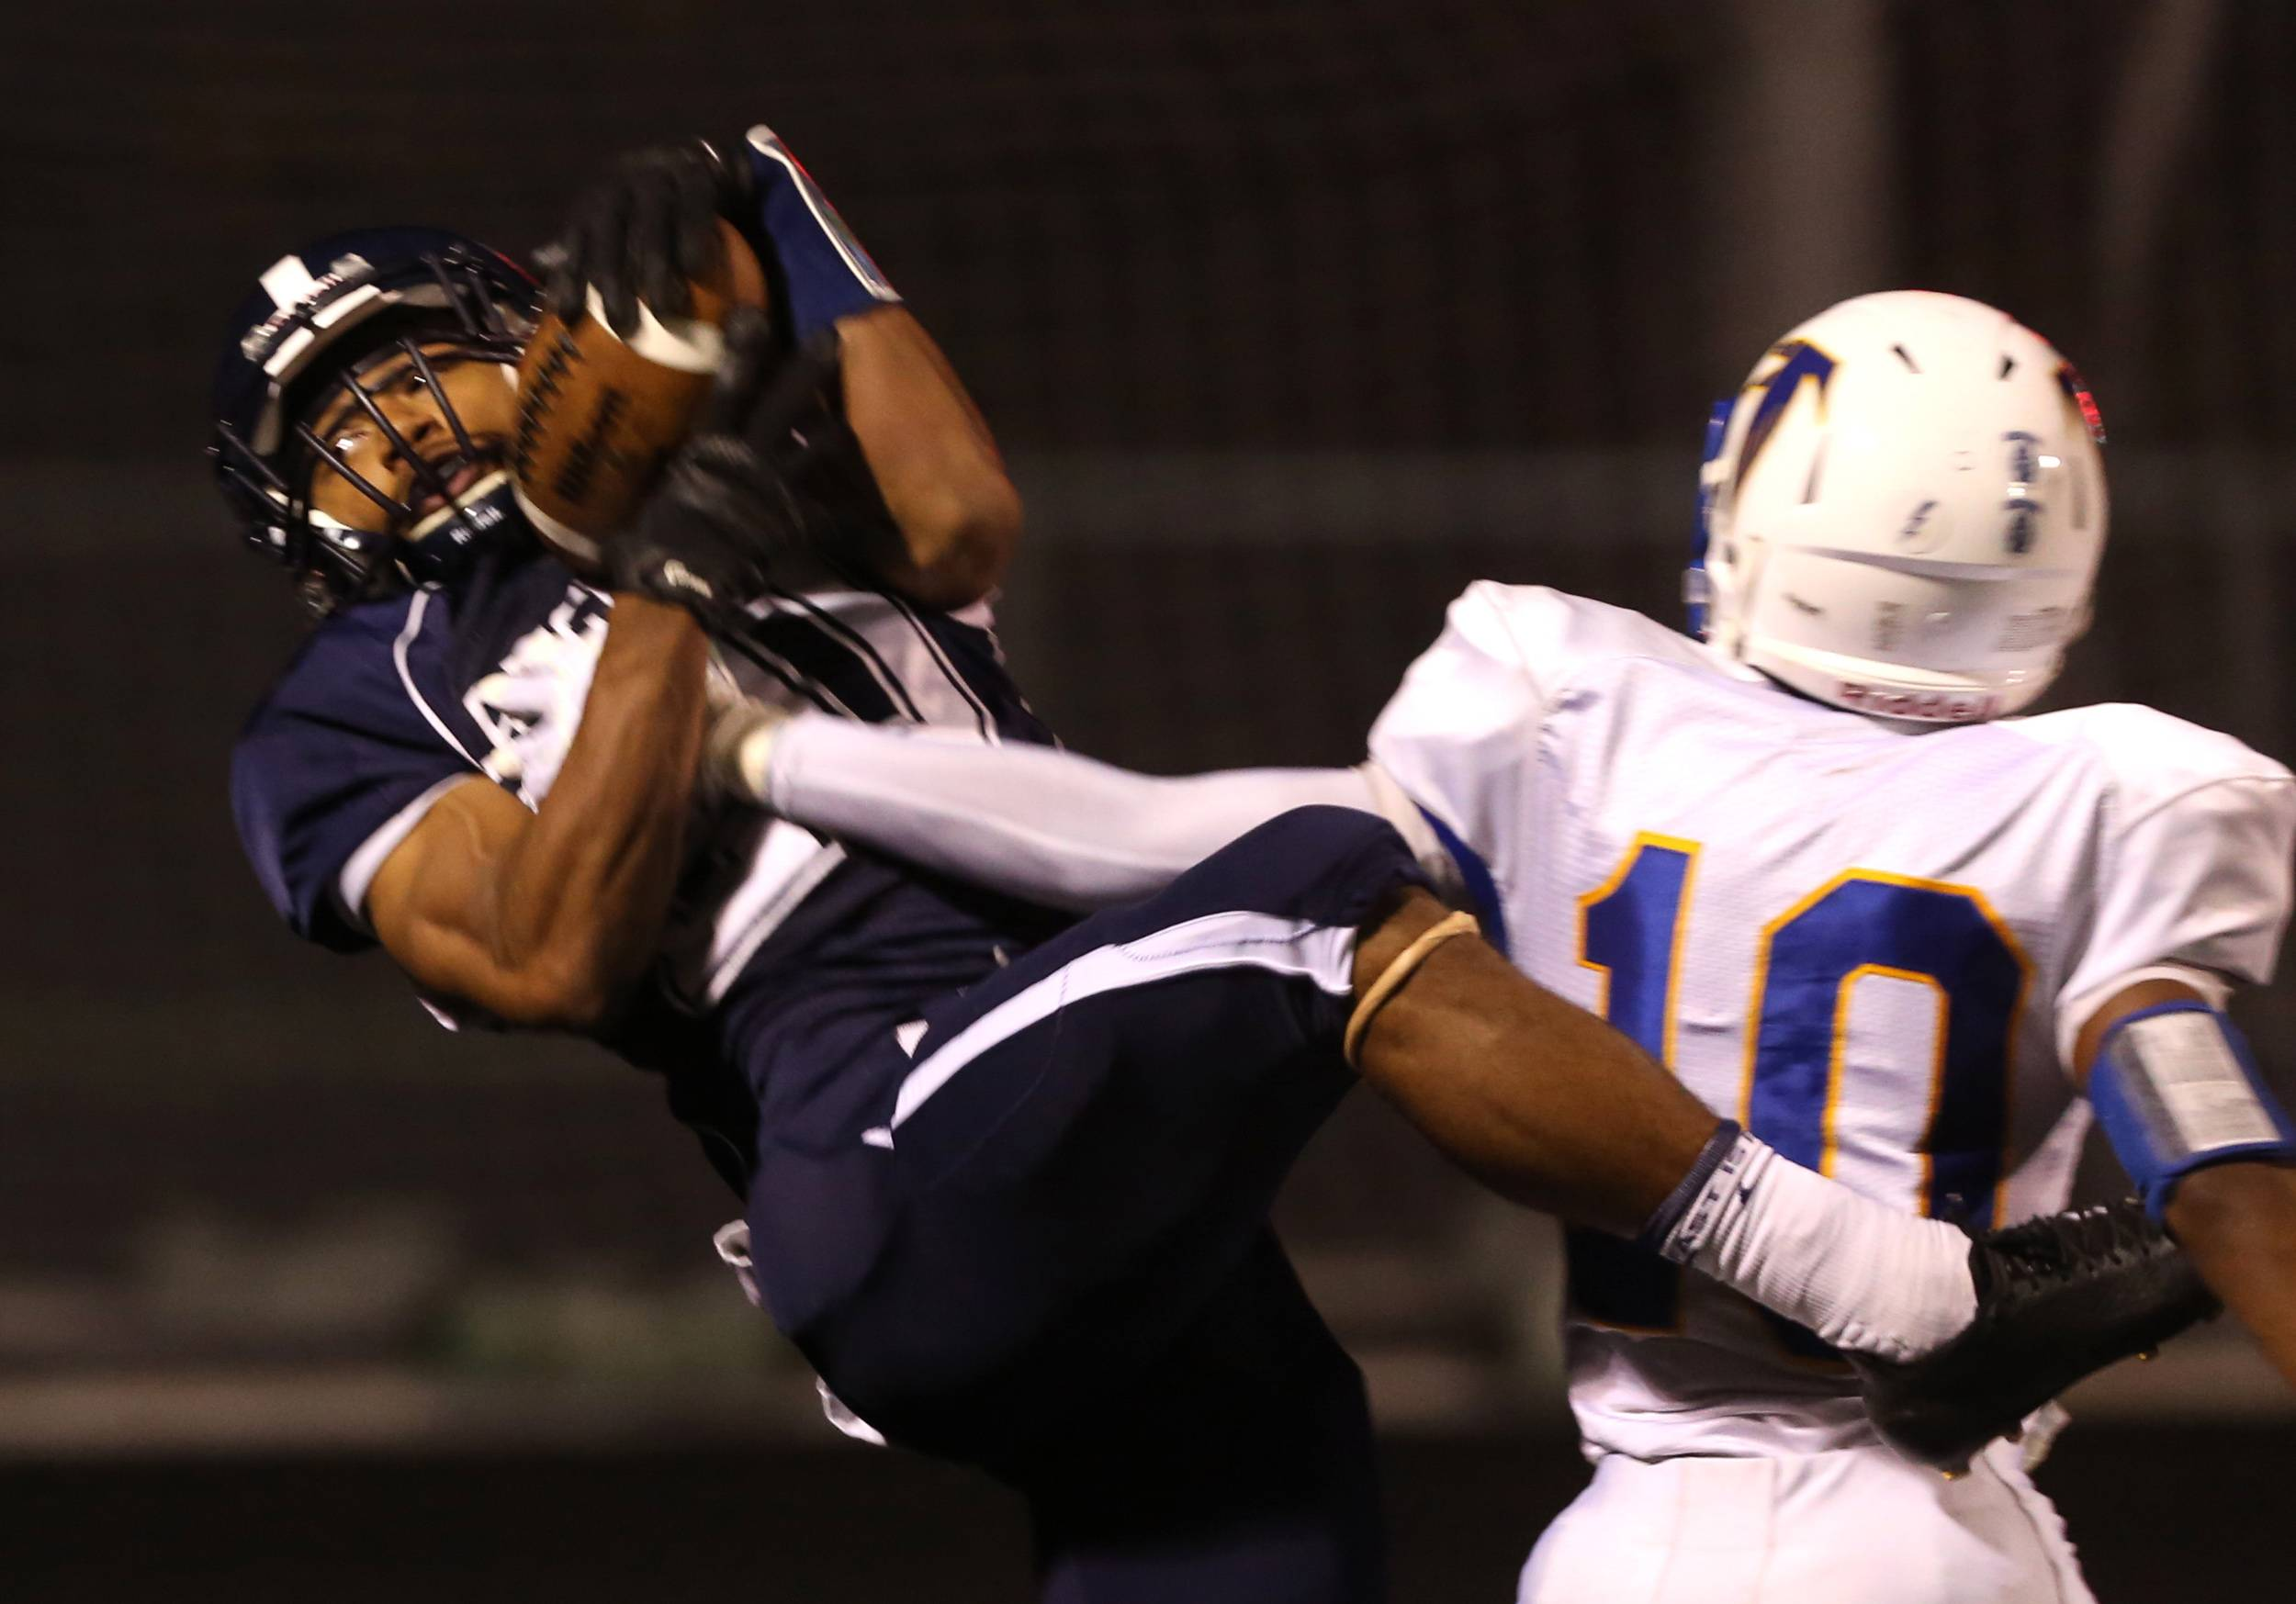 Lake Park's Antonio Shenault, left, grabs a 29-yard touchdown reception under tight coverage from Wheaton North's Ben Moore, right, during first half football action in Roselle.